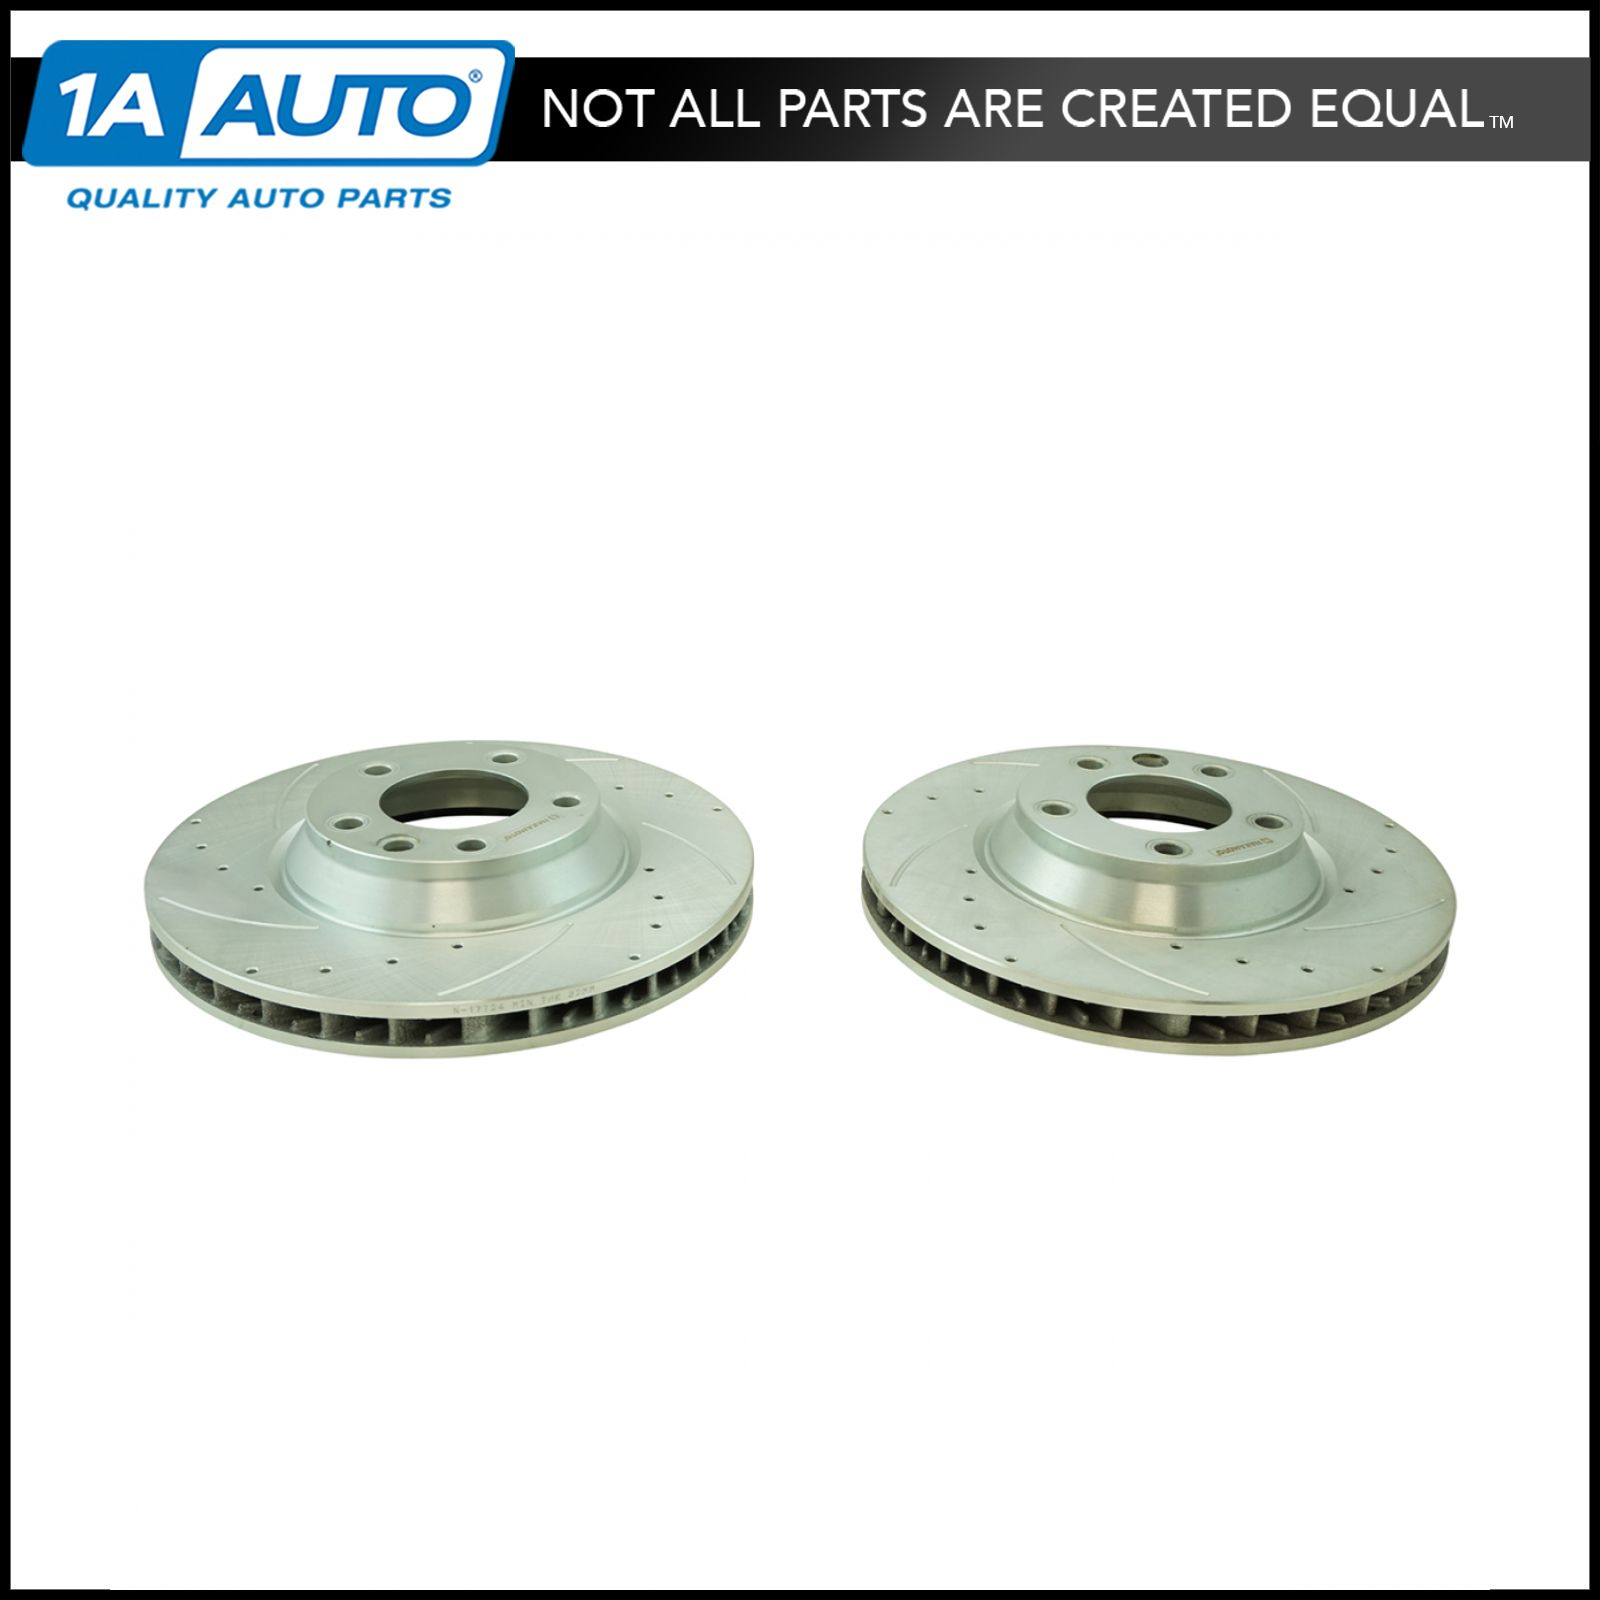 Nakamoto Performance Brake Rotor Drilled Slotted Front Zinc Coated Pair for Audi